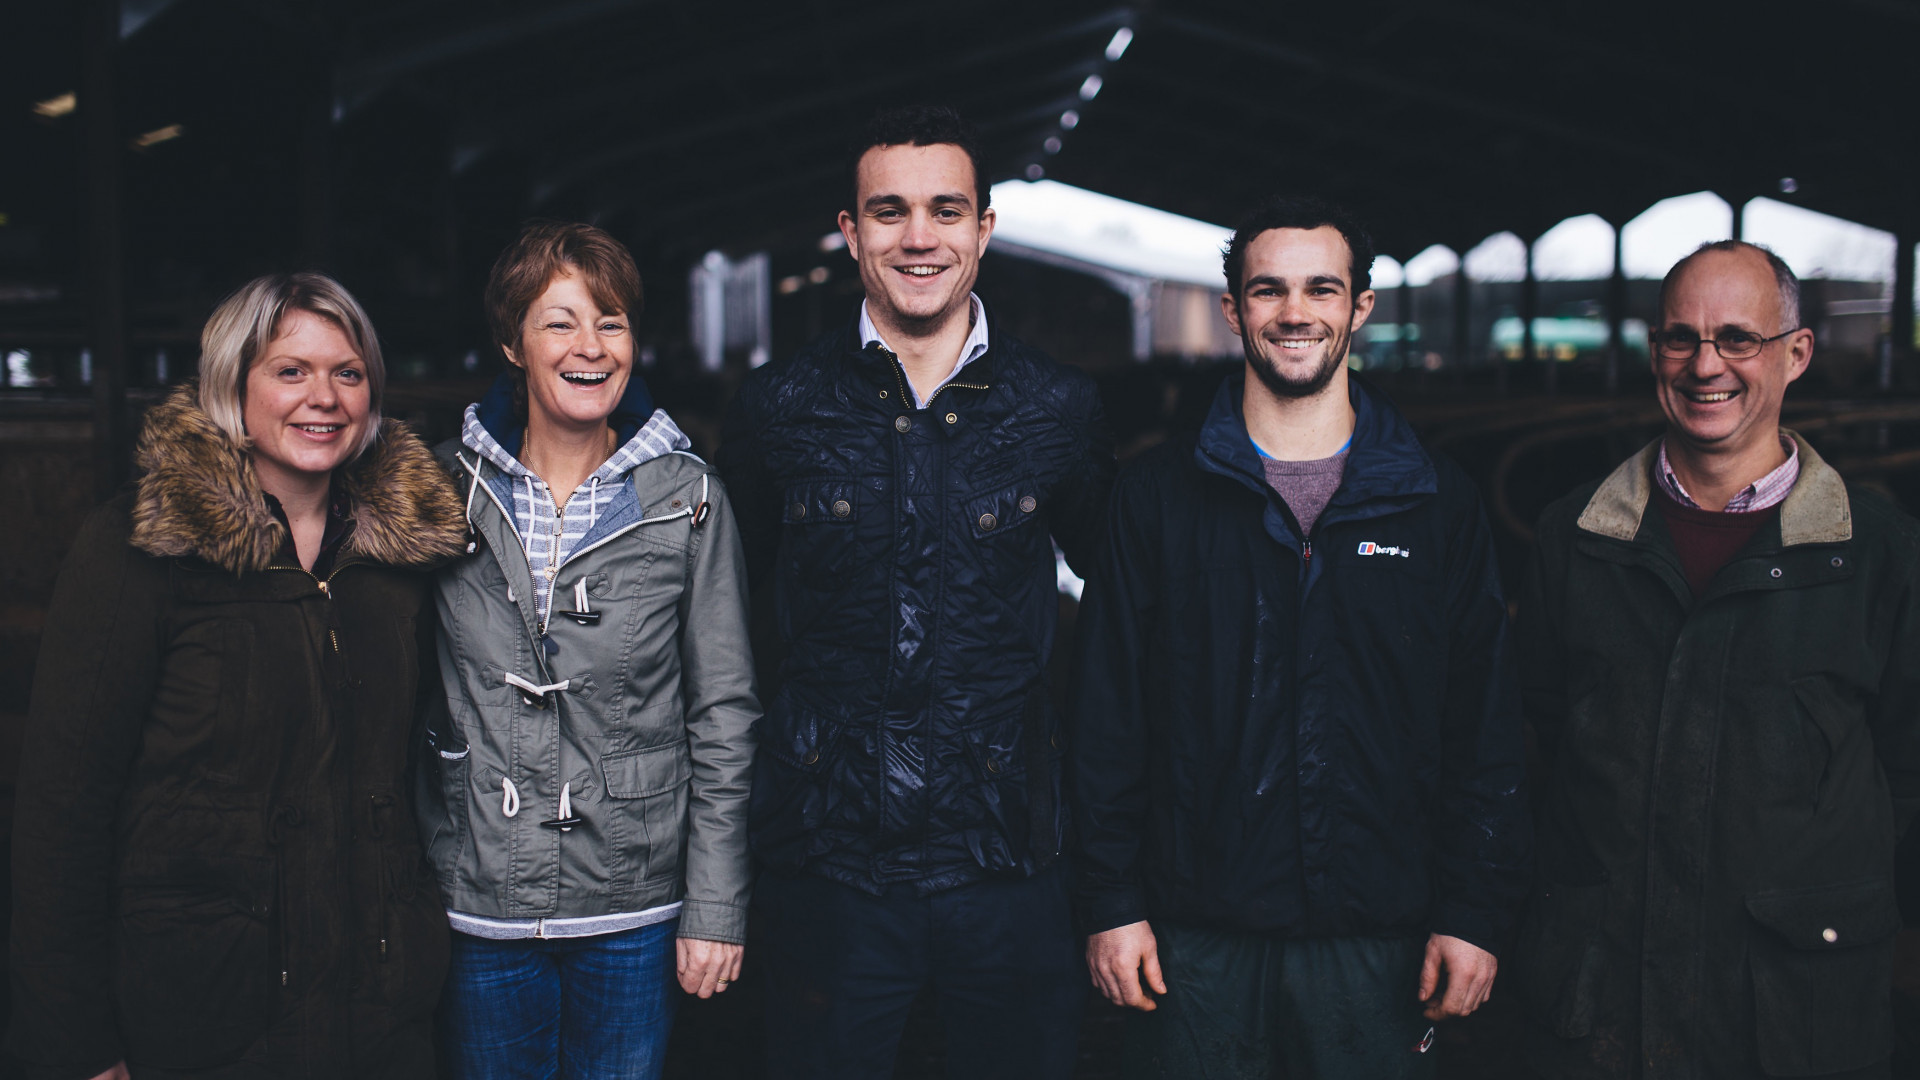 The team at The Estate Dairy